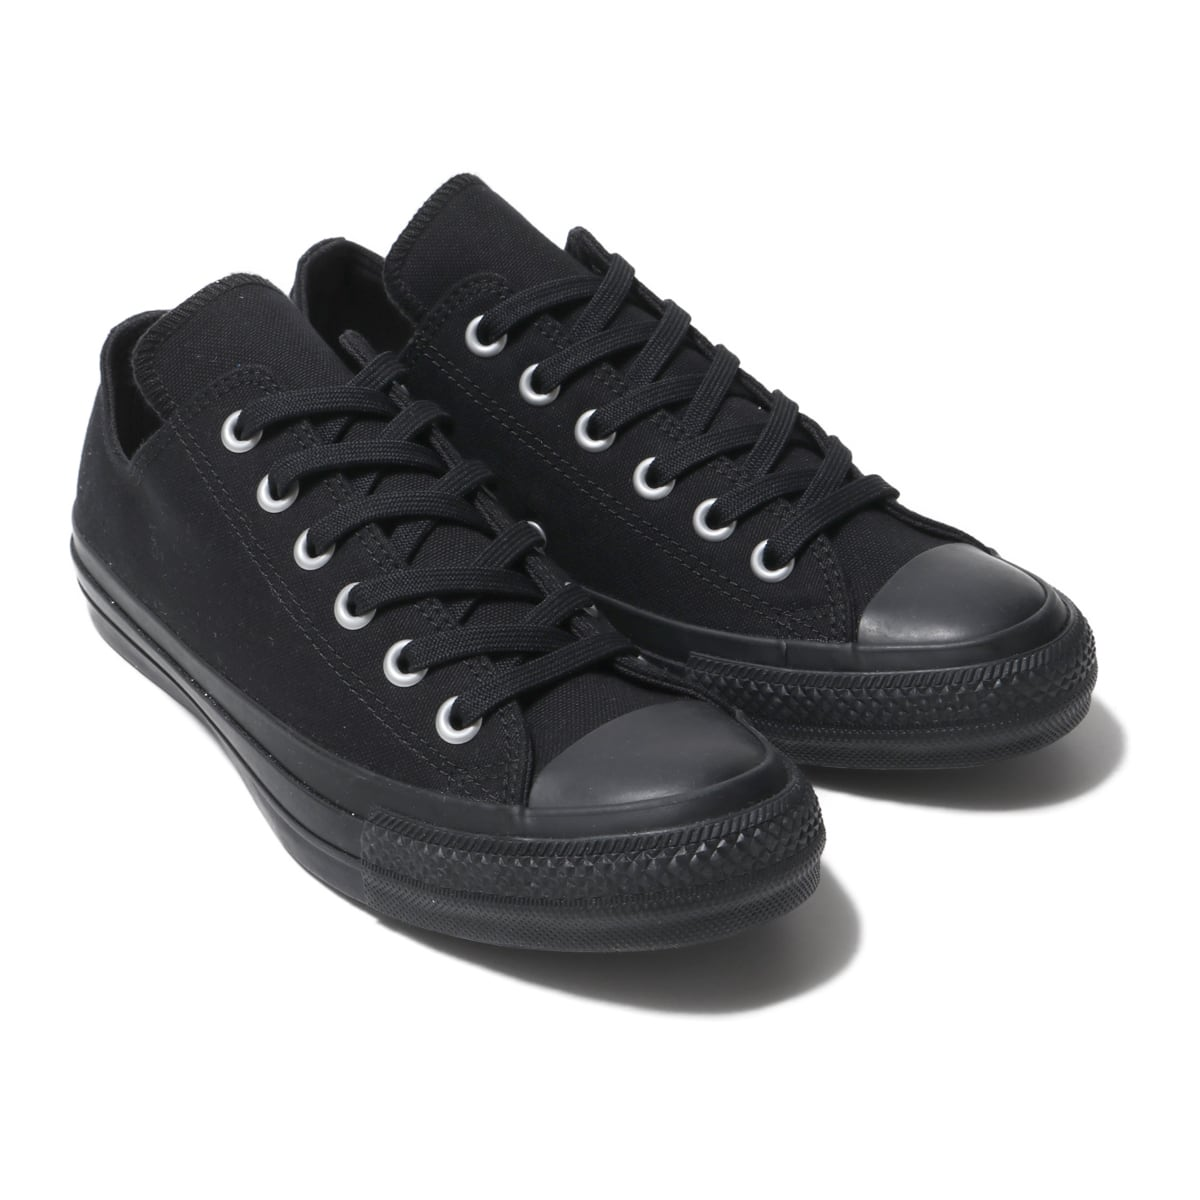 CONVERSE ALL STAR 100 COLORS OX BLACK MONOCHROME 19FA-S_photo_large